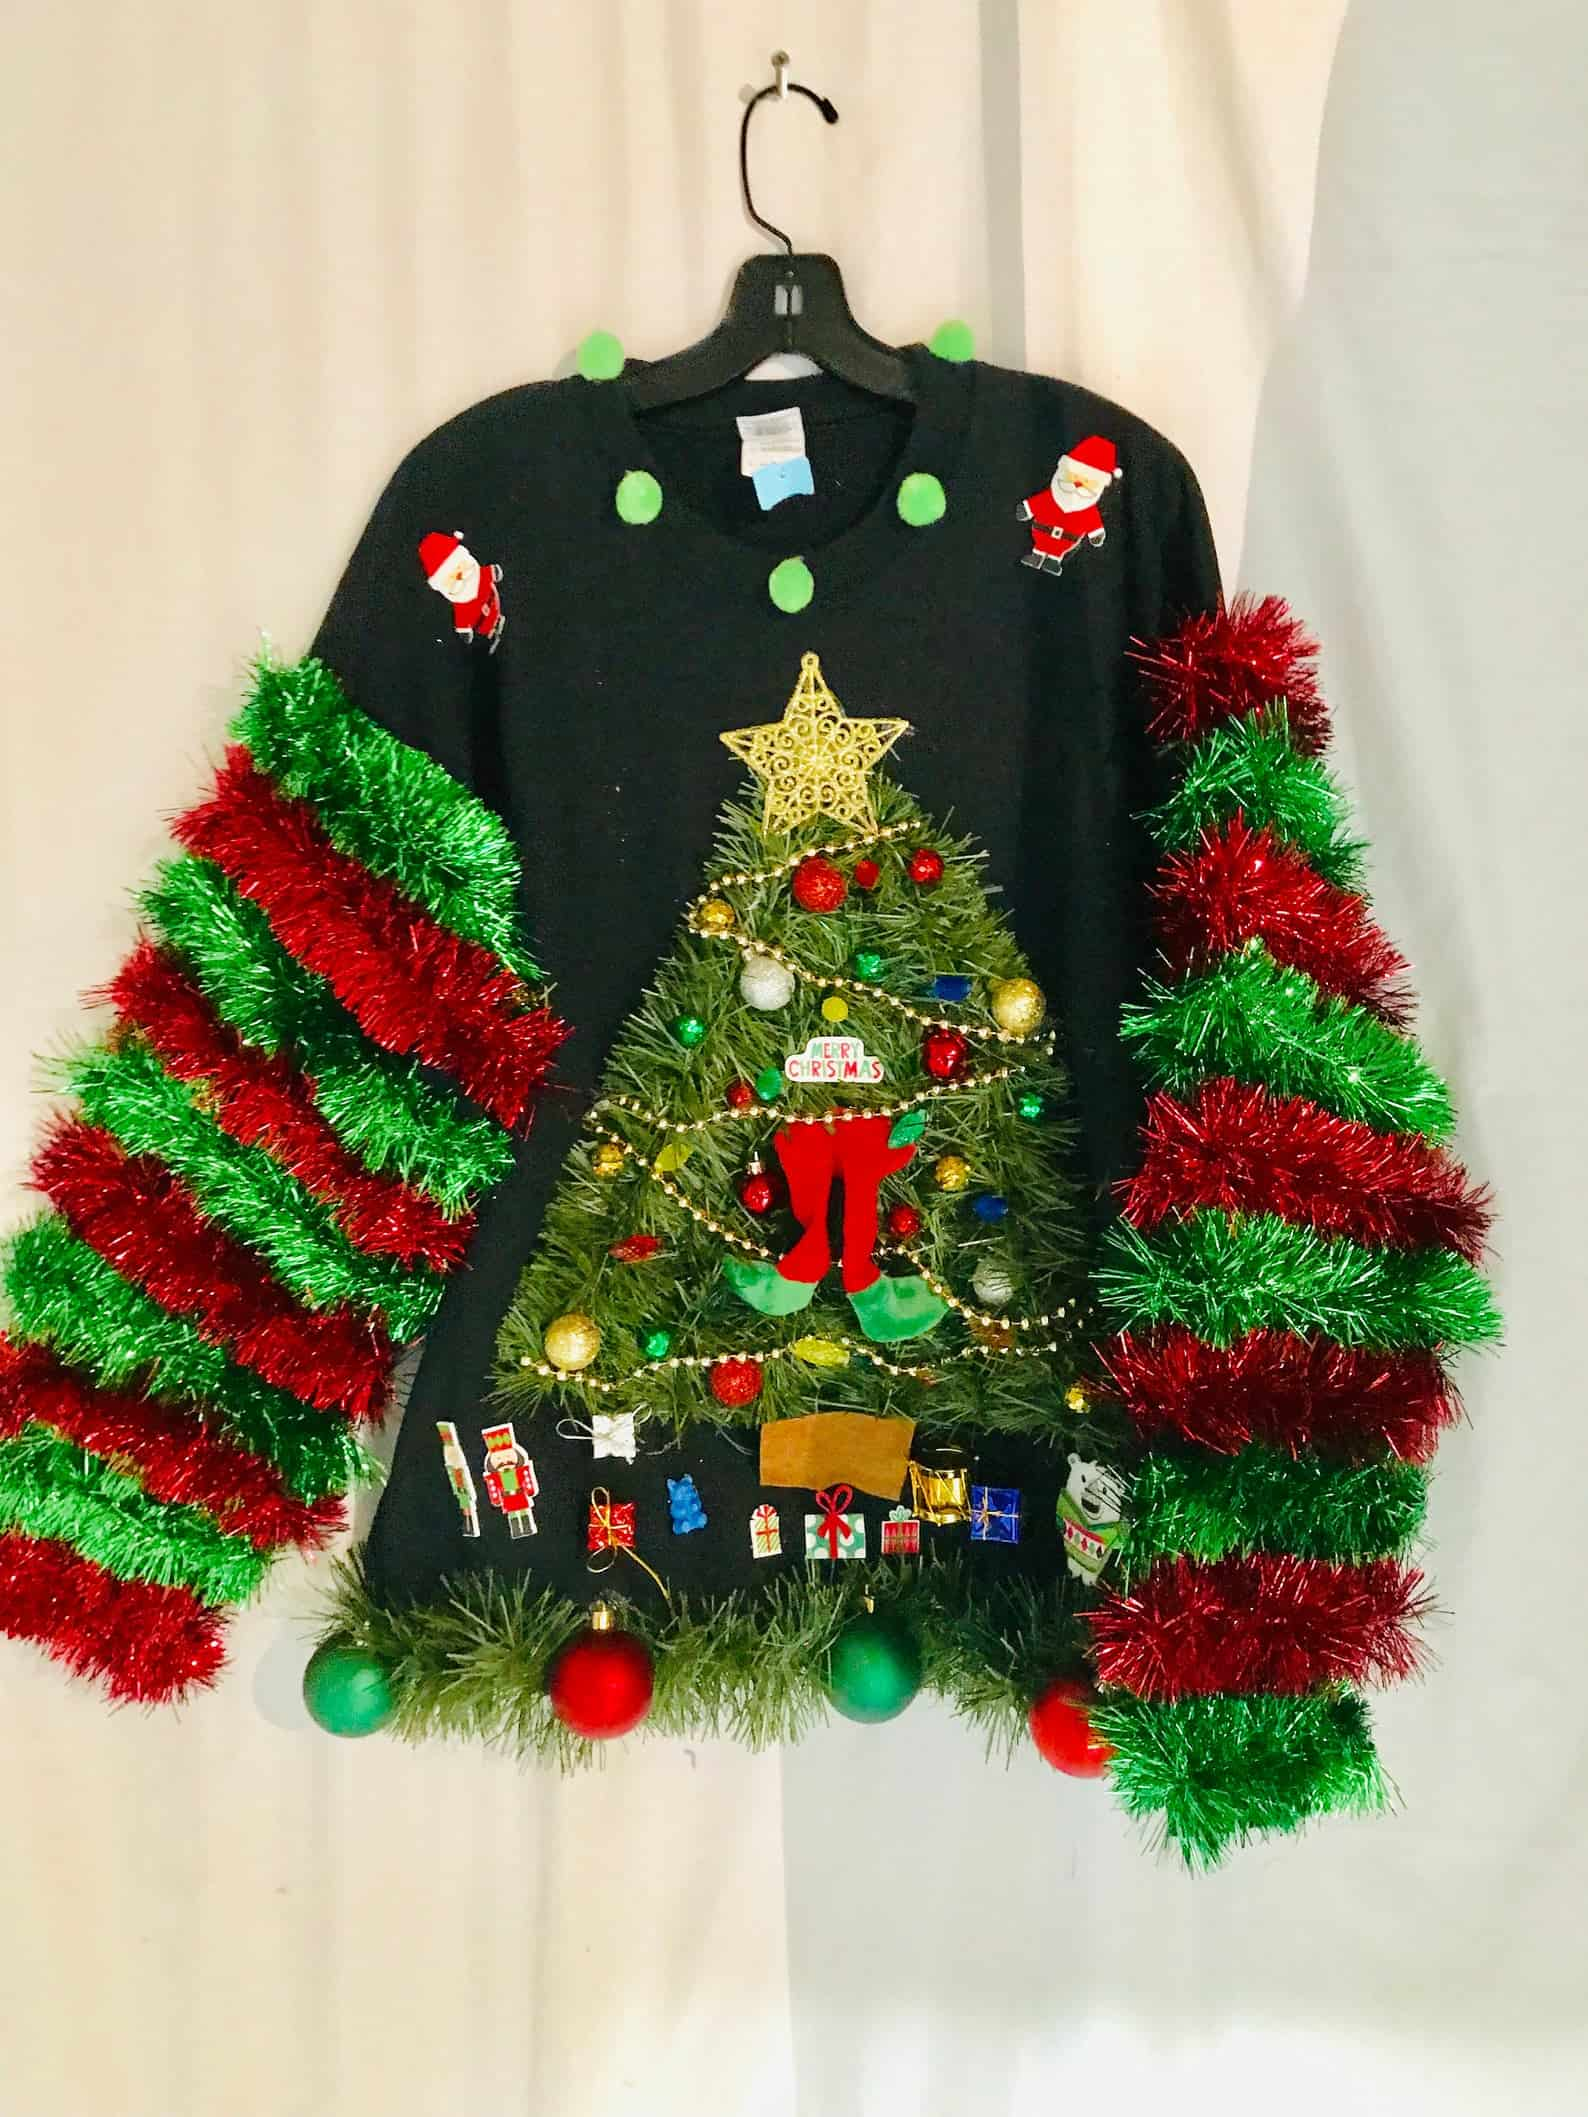 Ugly Tacky Christmas Sweater with Grinch in a Tree, Garland and Lights on Etsy